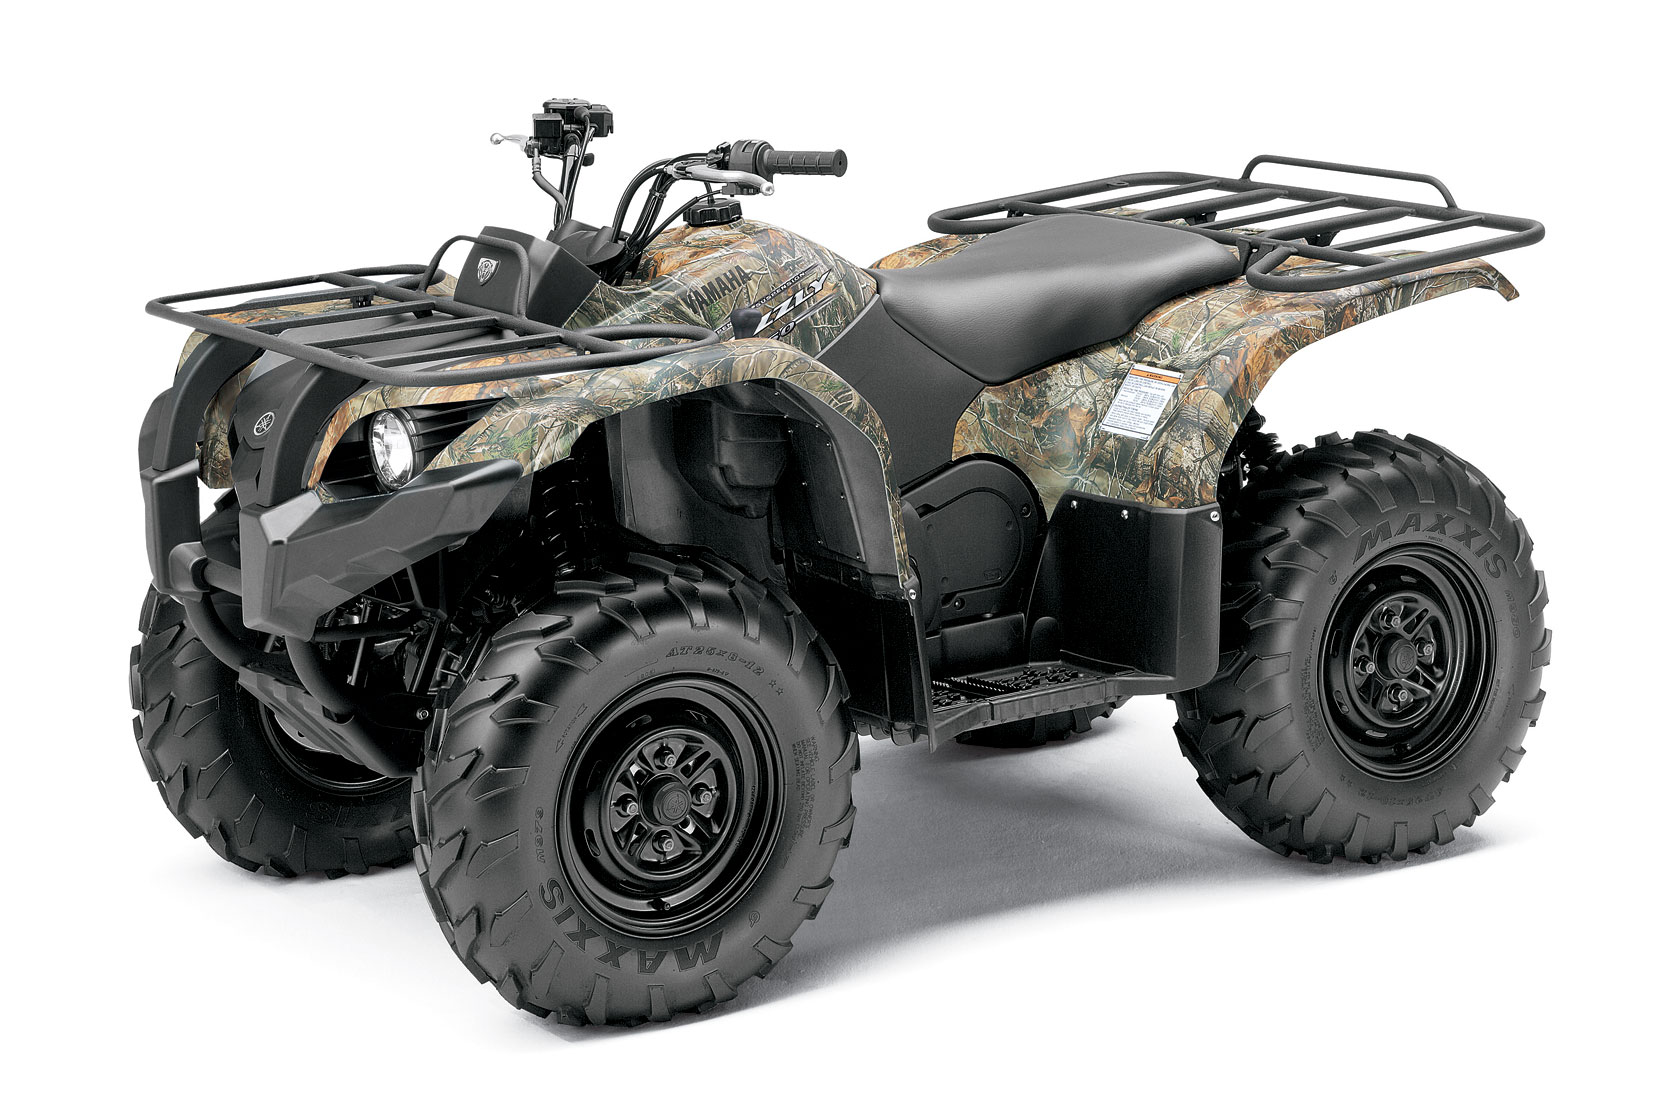 Yamaha grizzly 450 4x4 2010 2011 autoevolution for Yamaha grizzly 4x4